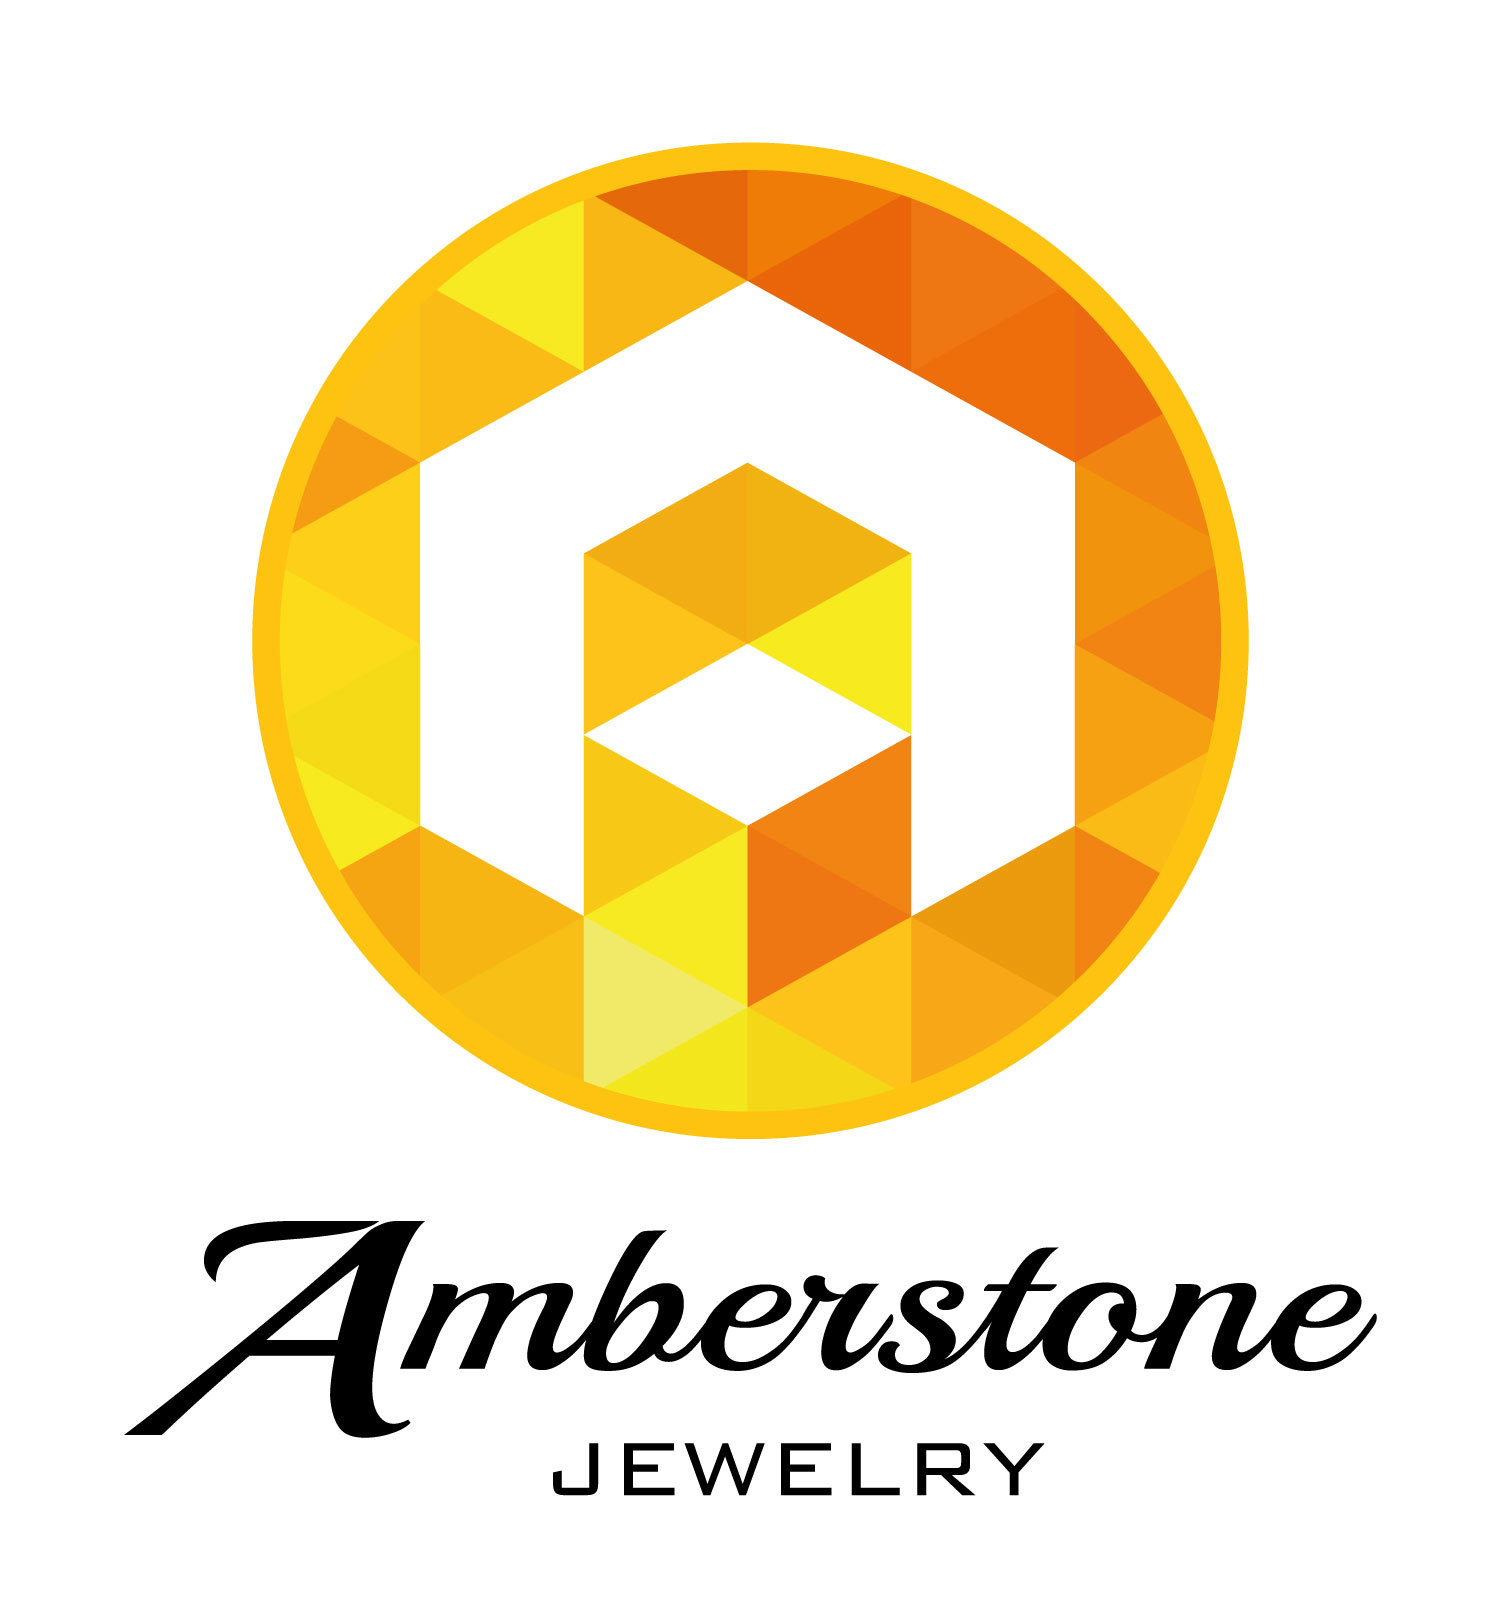 https://amberstone-jewelry.com/en/